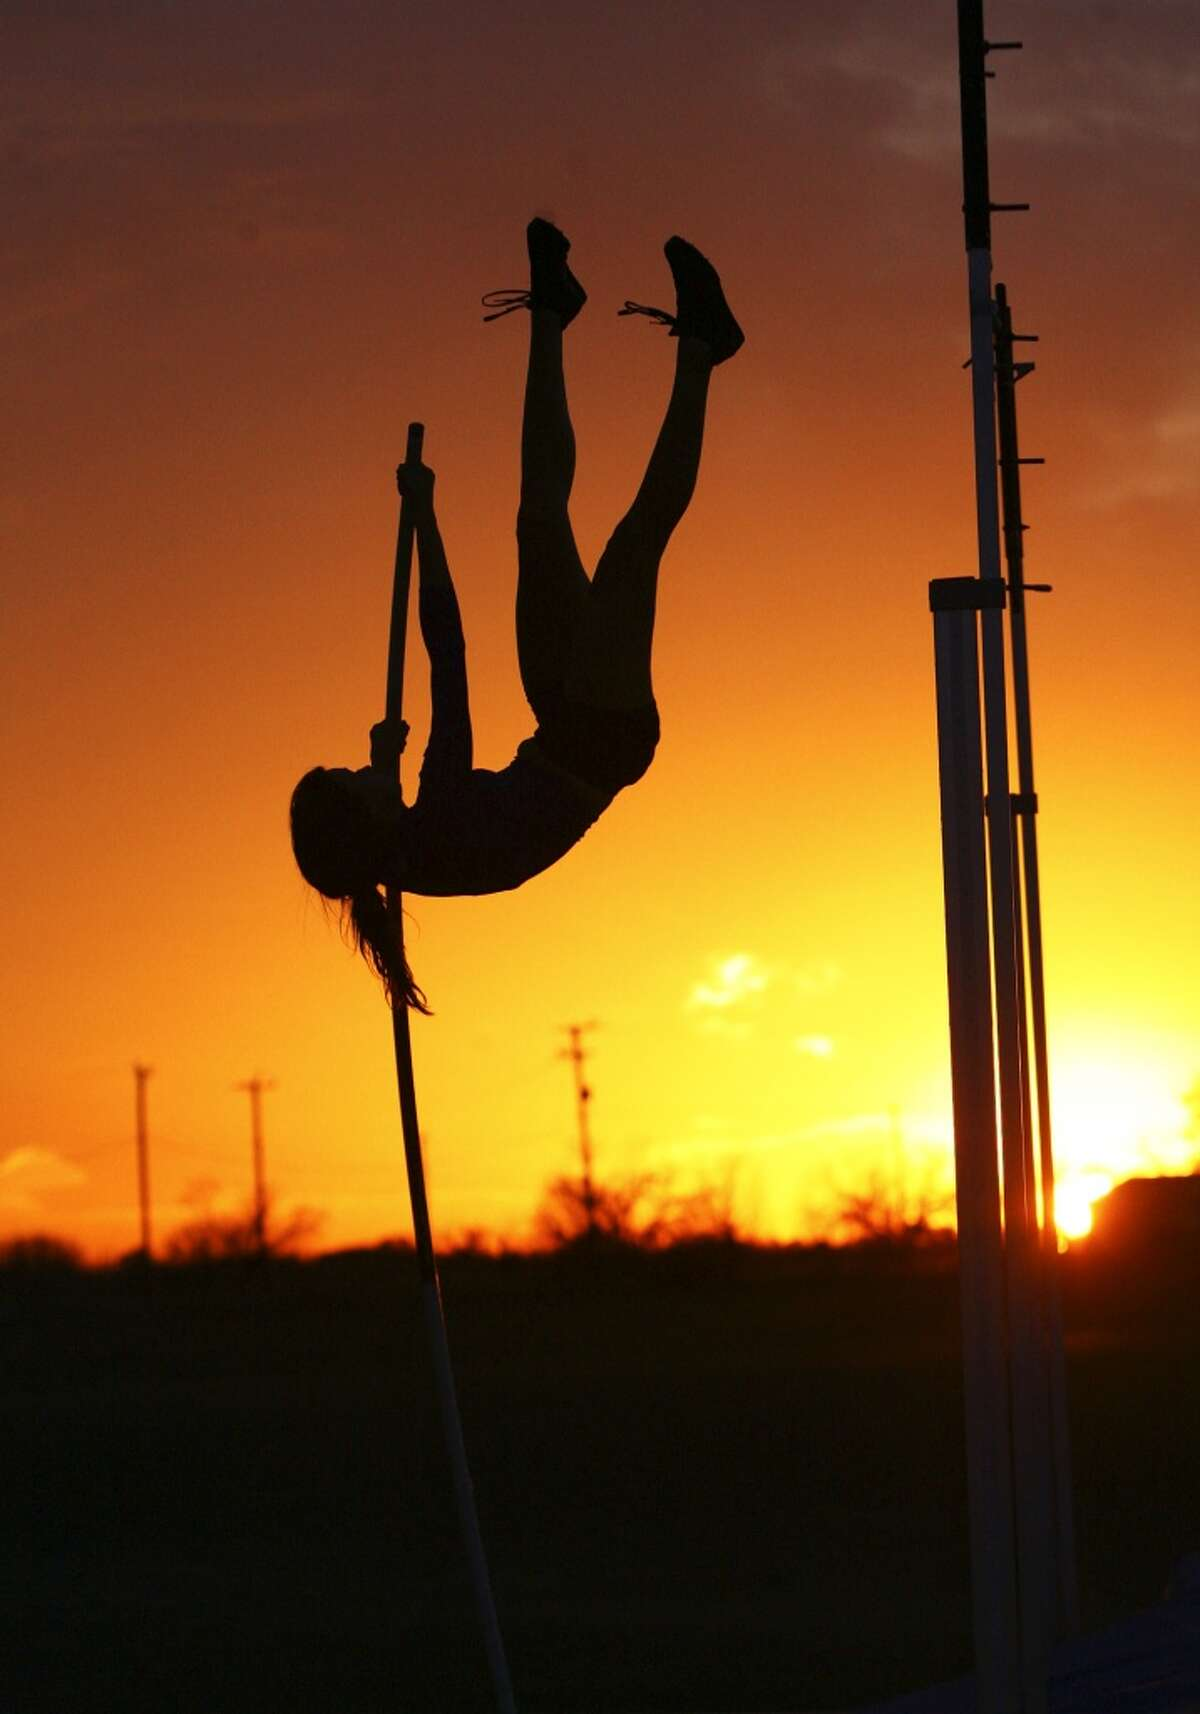 SPORTS Demi Payne, from New Braunfels High School, practices her technique in pole vaulting at Jim Dickson's Elite Vaulter Sports Complexnear St. Hedwig Wednesday at sunset. Tom Reel/Staff February 18, 2009.